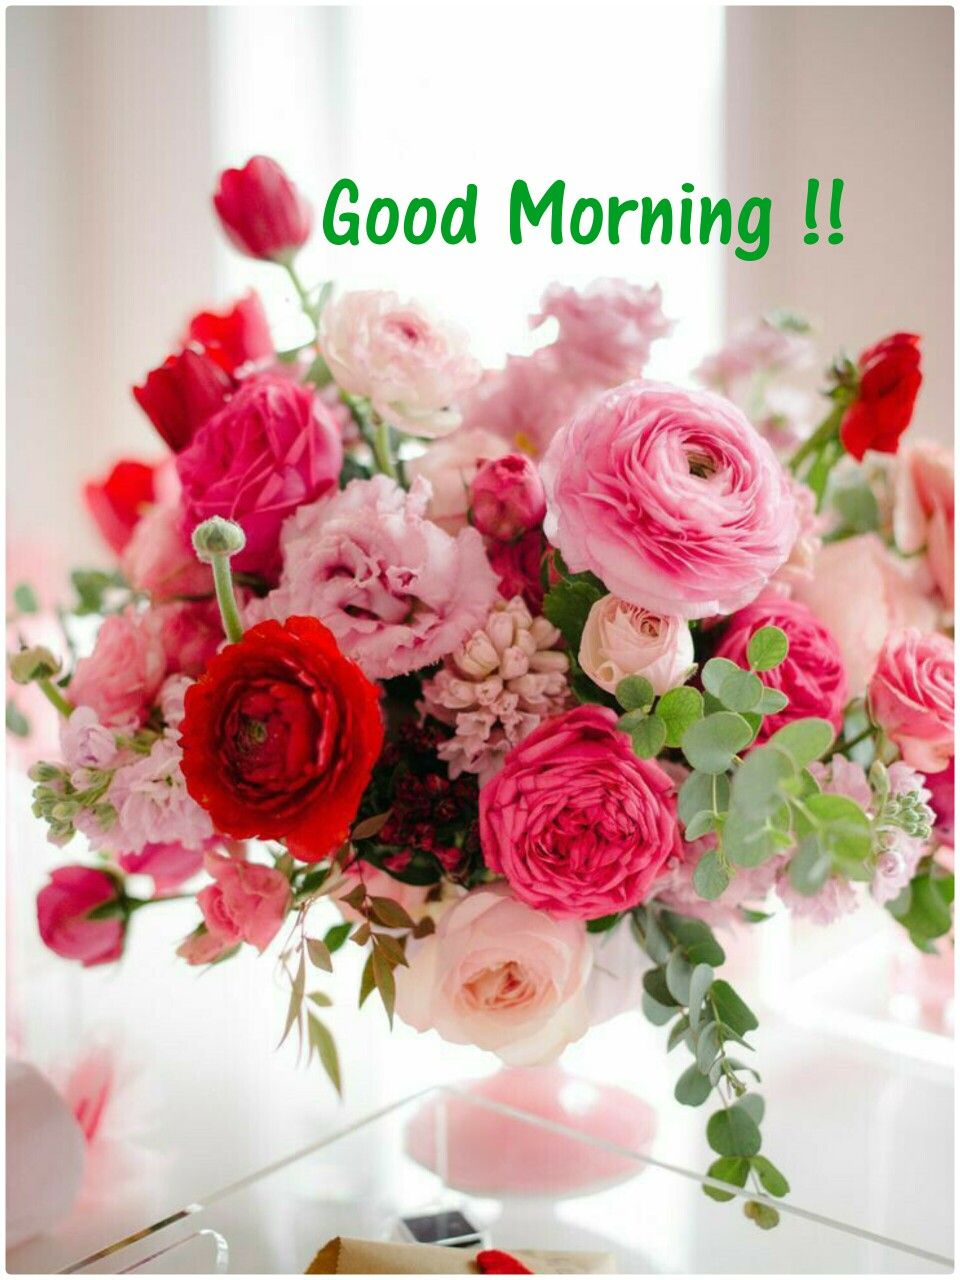 Good Morning....Have a beautiful day everyone